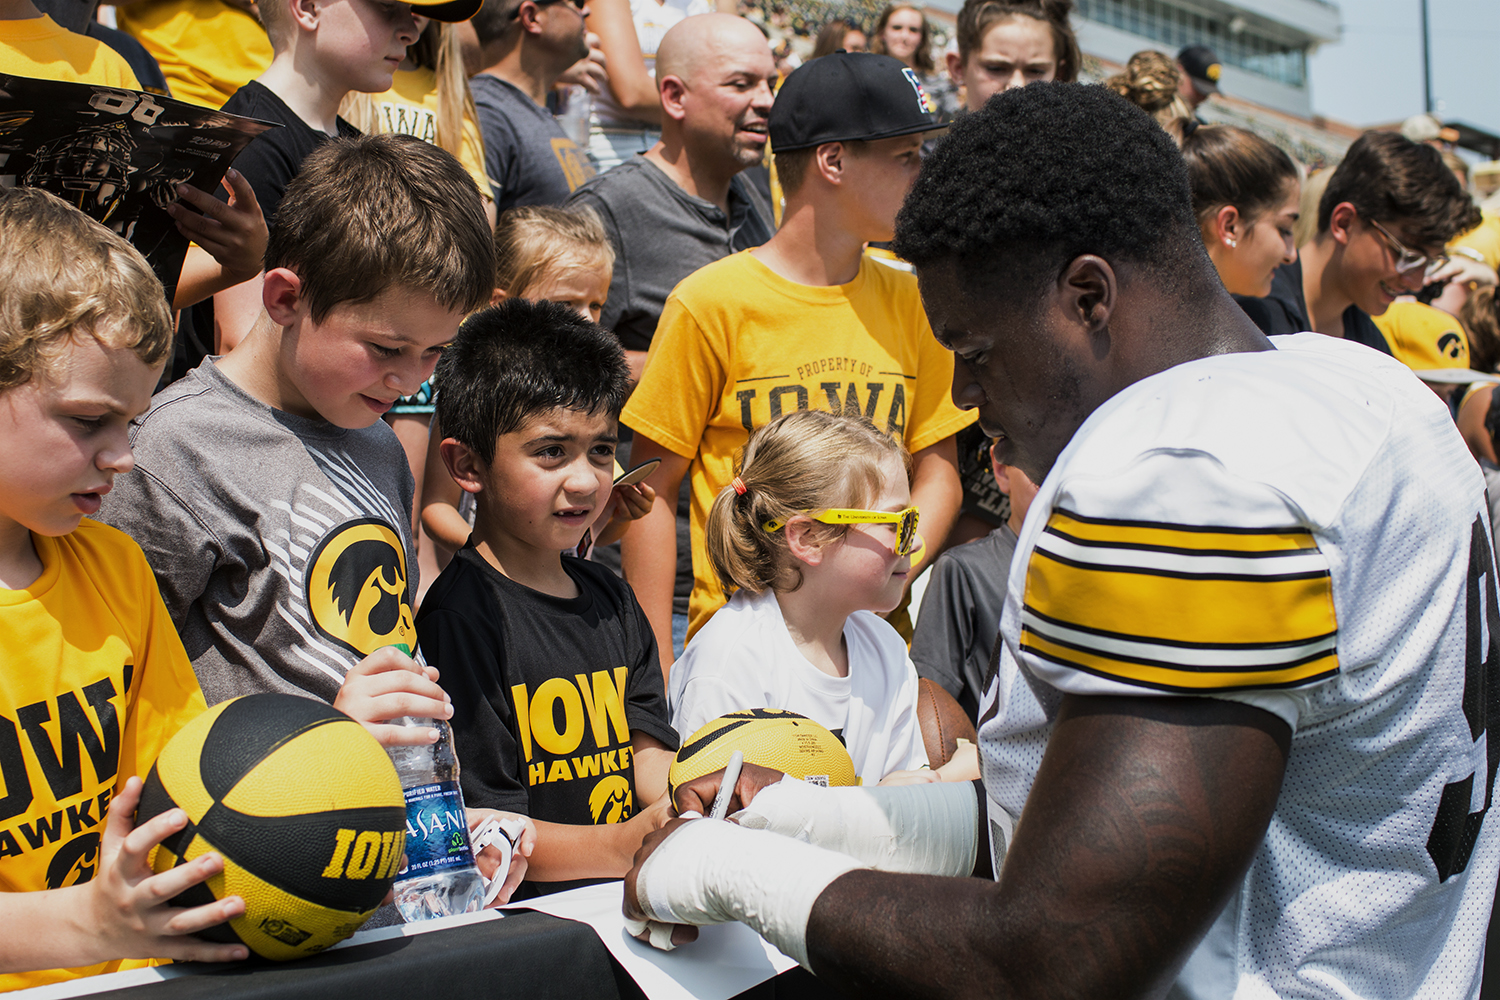 Defensive+end+Brandon+Simon+signs+a+poster+during+Iowa+Football+Kids%27+Day+at+Kinnick+Stadium+on+Saturday%2C+Aug.+11%2C+2018.+